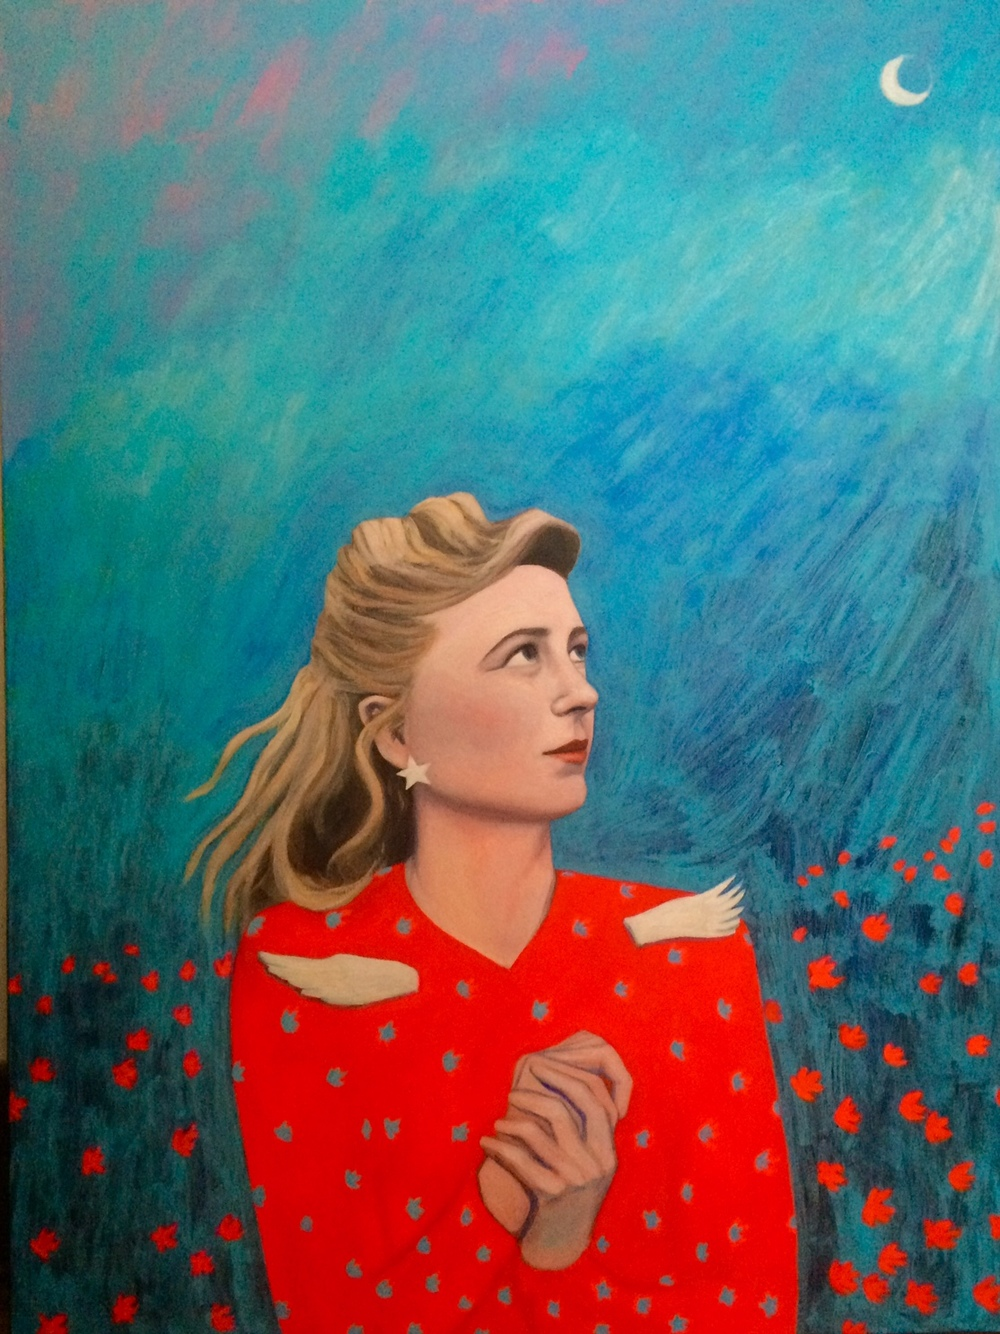 Margaret Wise Brown, acrylic and watercolor on canvas, 30 x 40, 2016